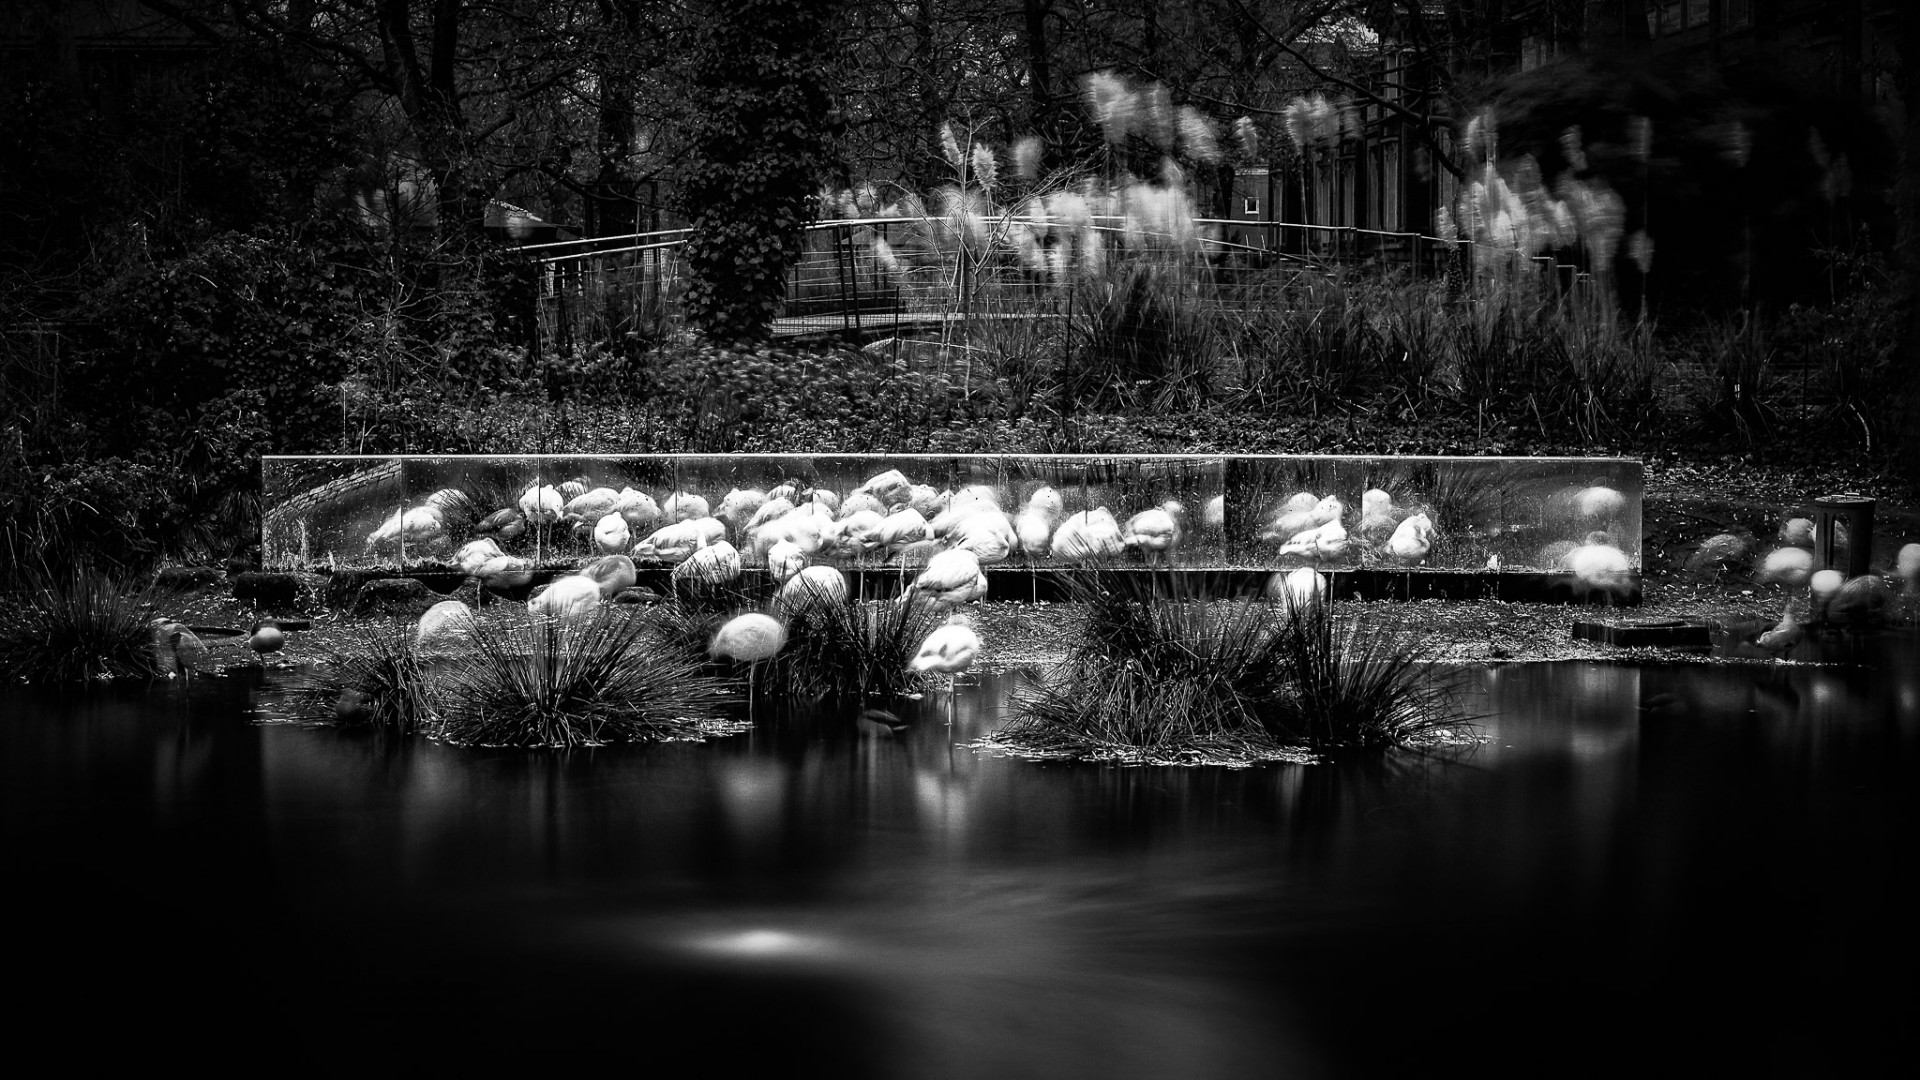 A long exposure in black of white of the pink flamingos at the Artis, the Amsterdam Zoo